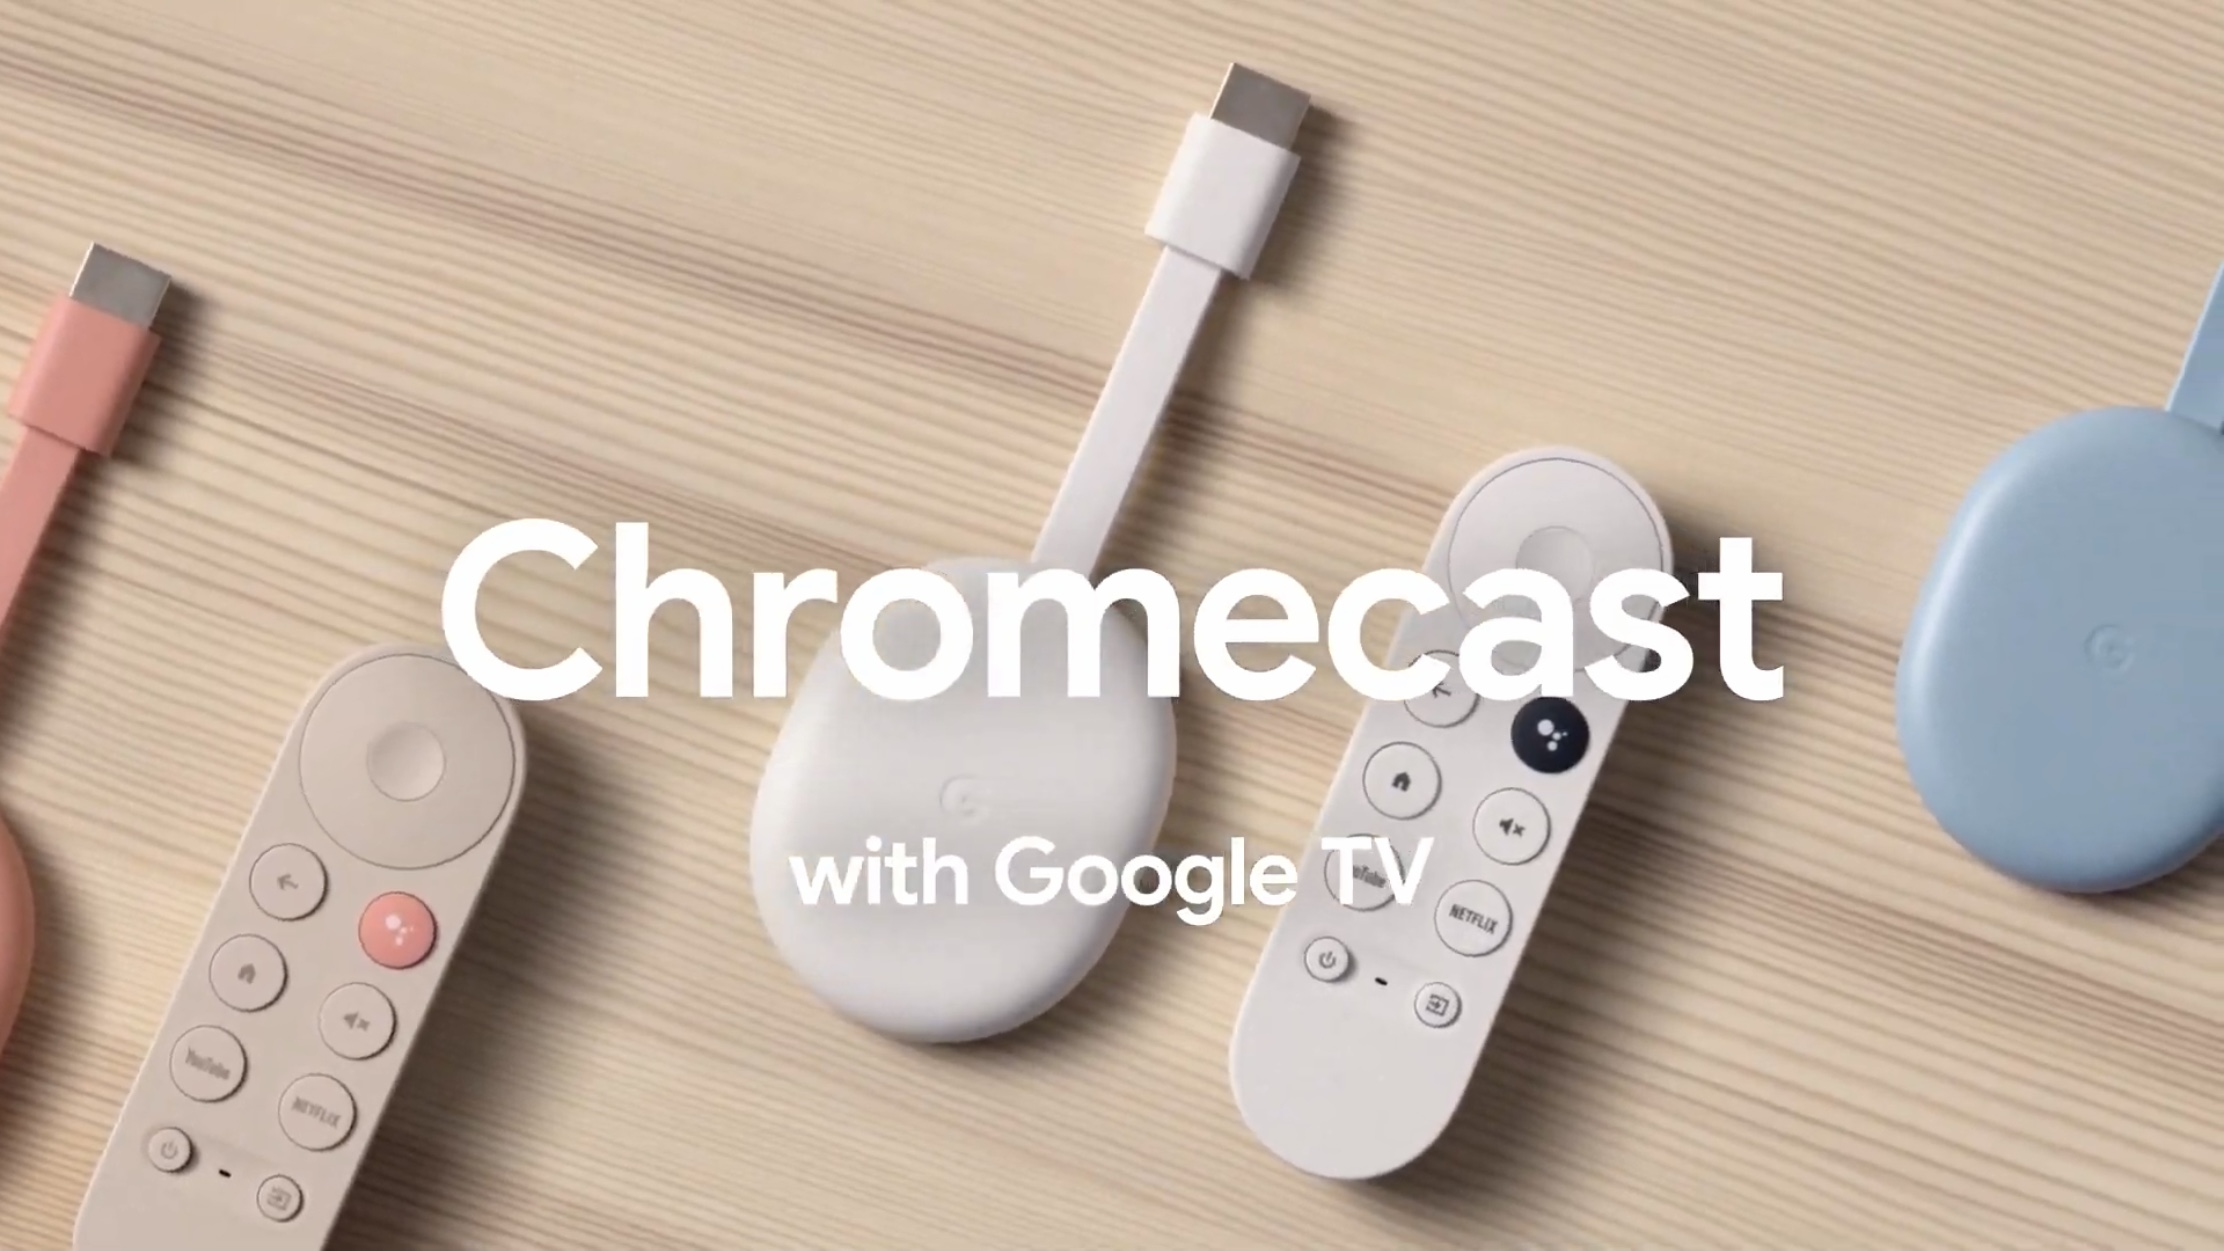 Chromecast Google TV